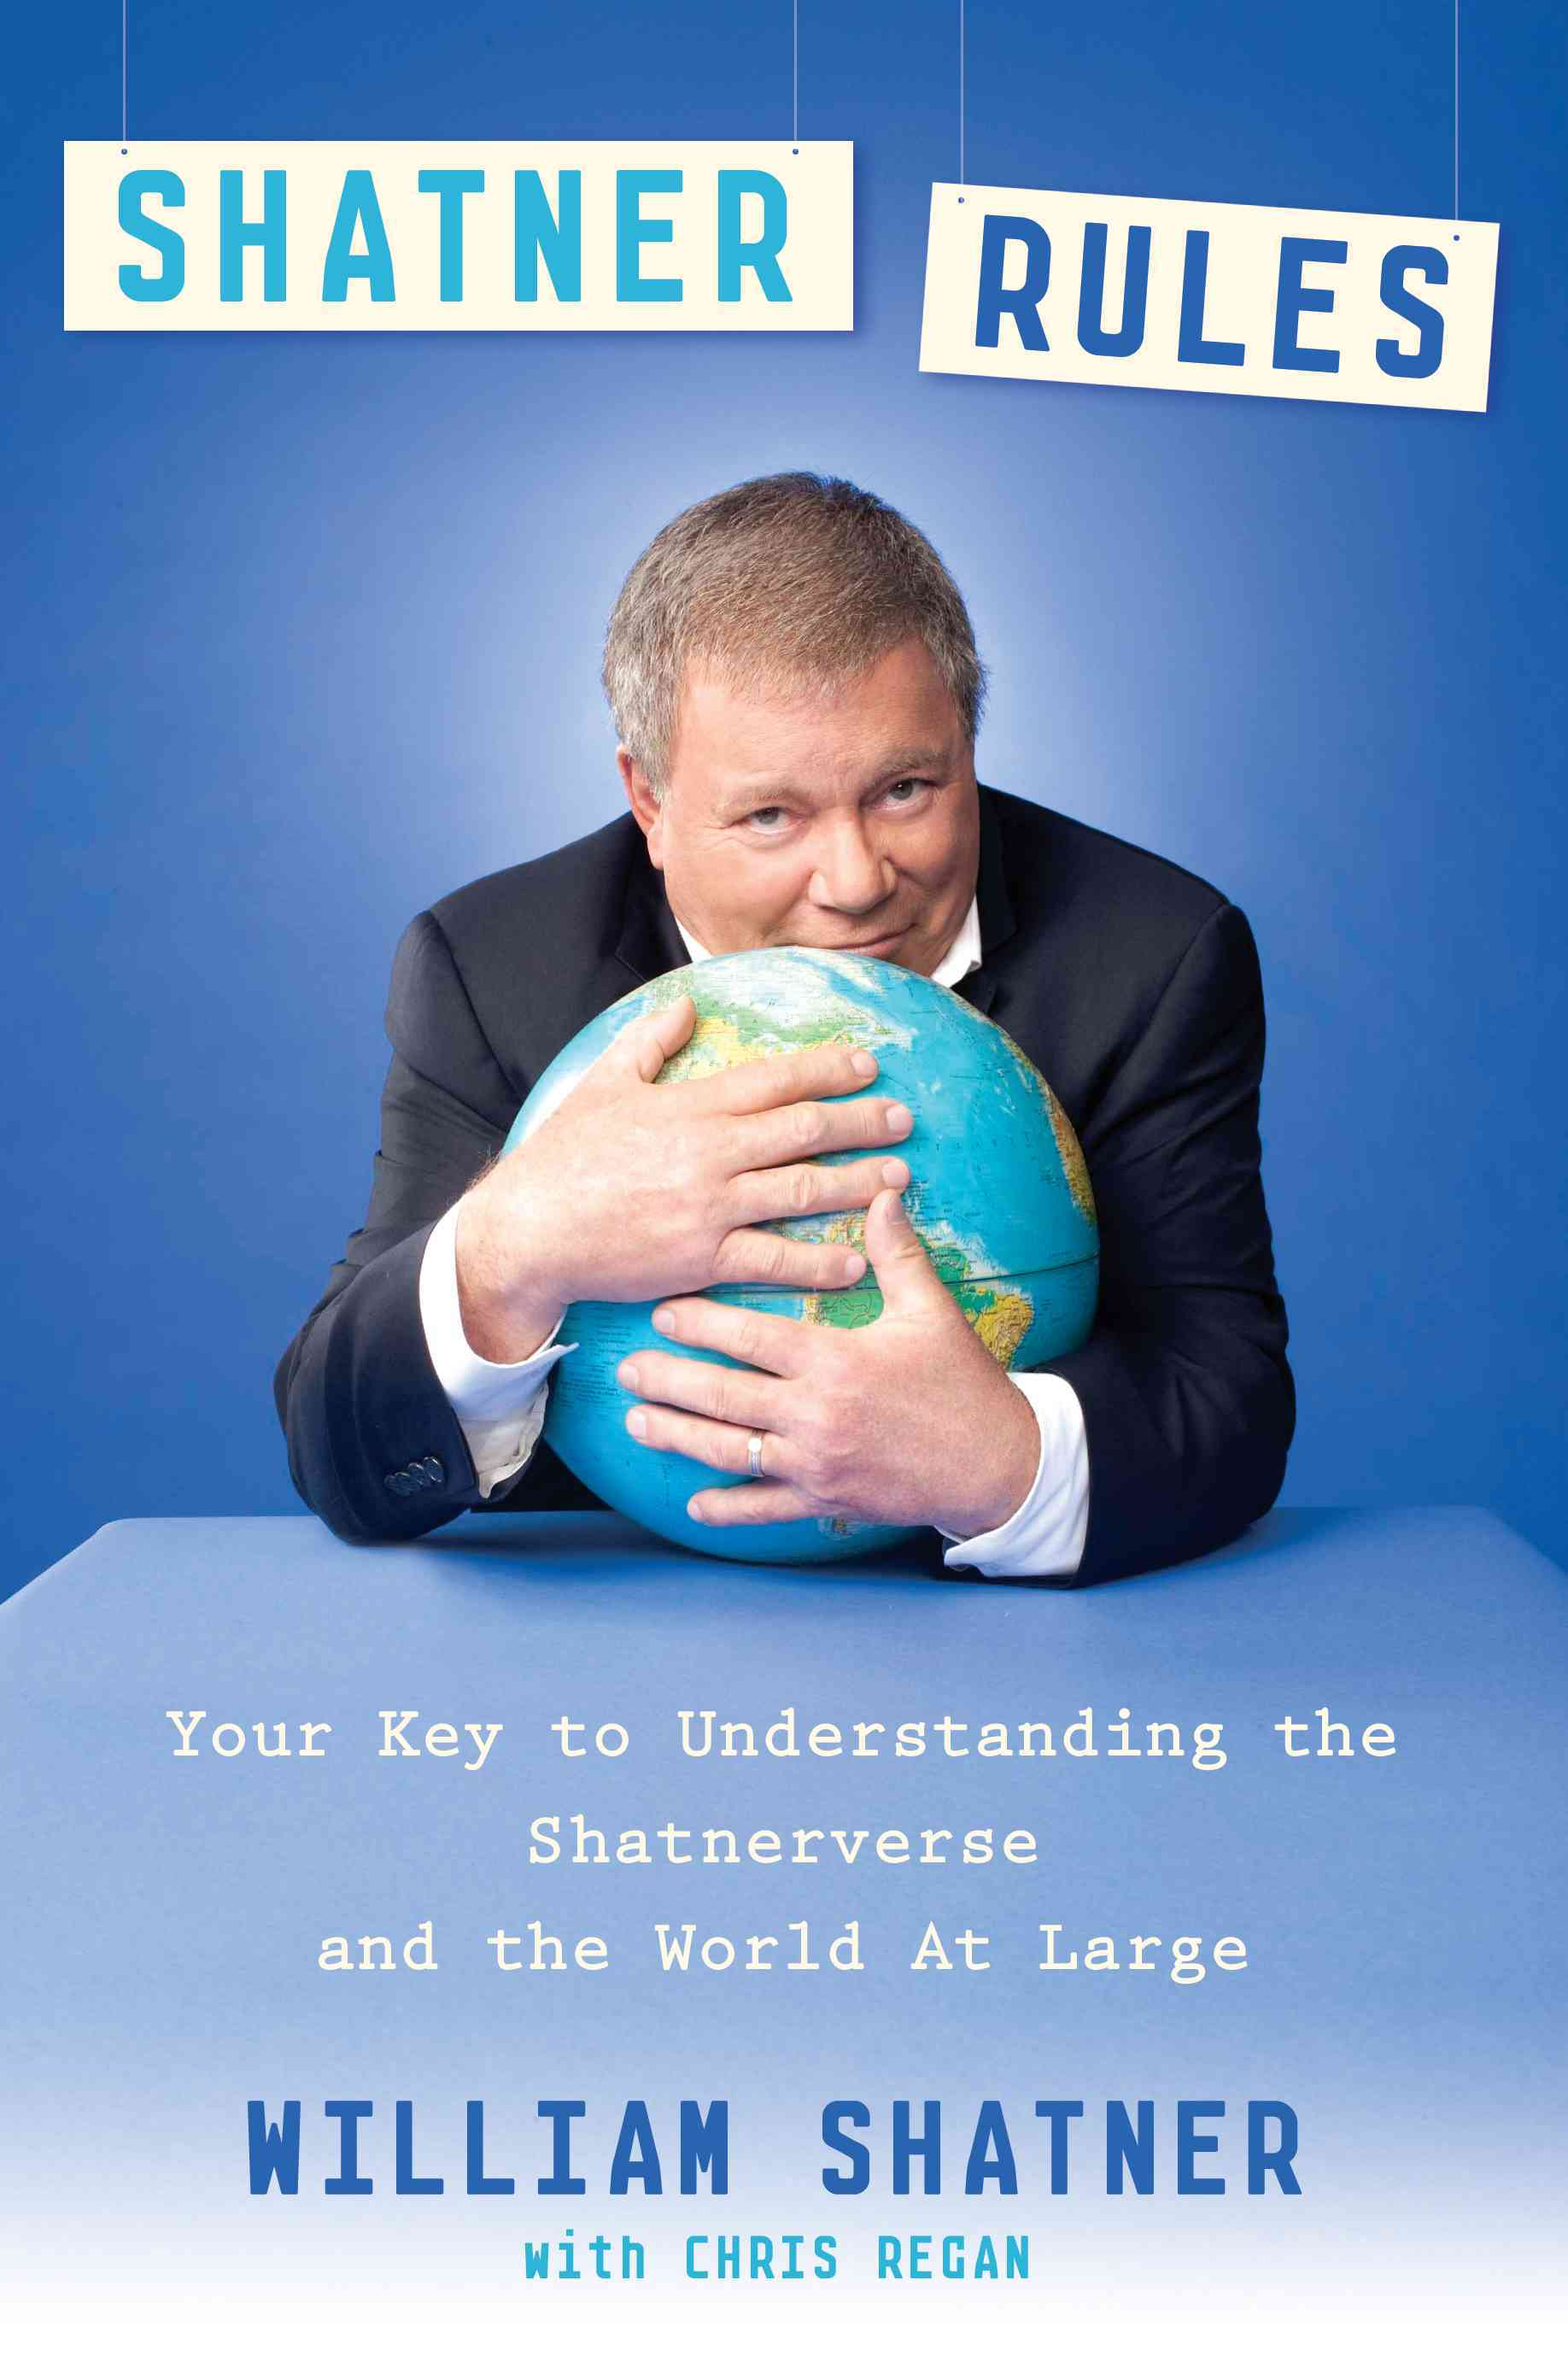 Shatner Rules: Your Guide to Understanding the Shatnerverse and the World at Large (Hardcover)